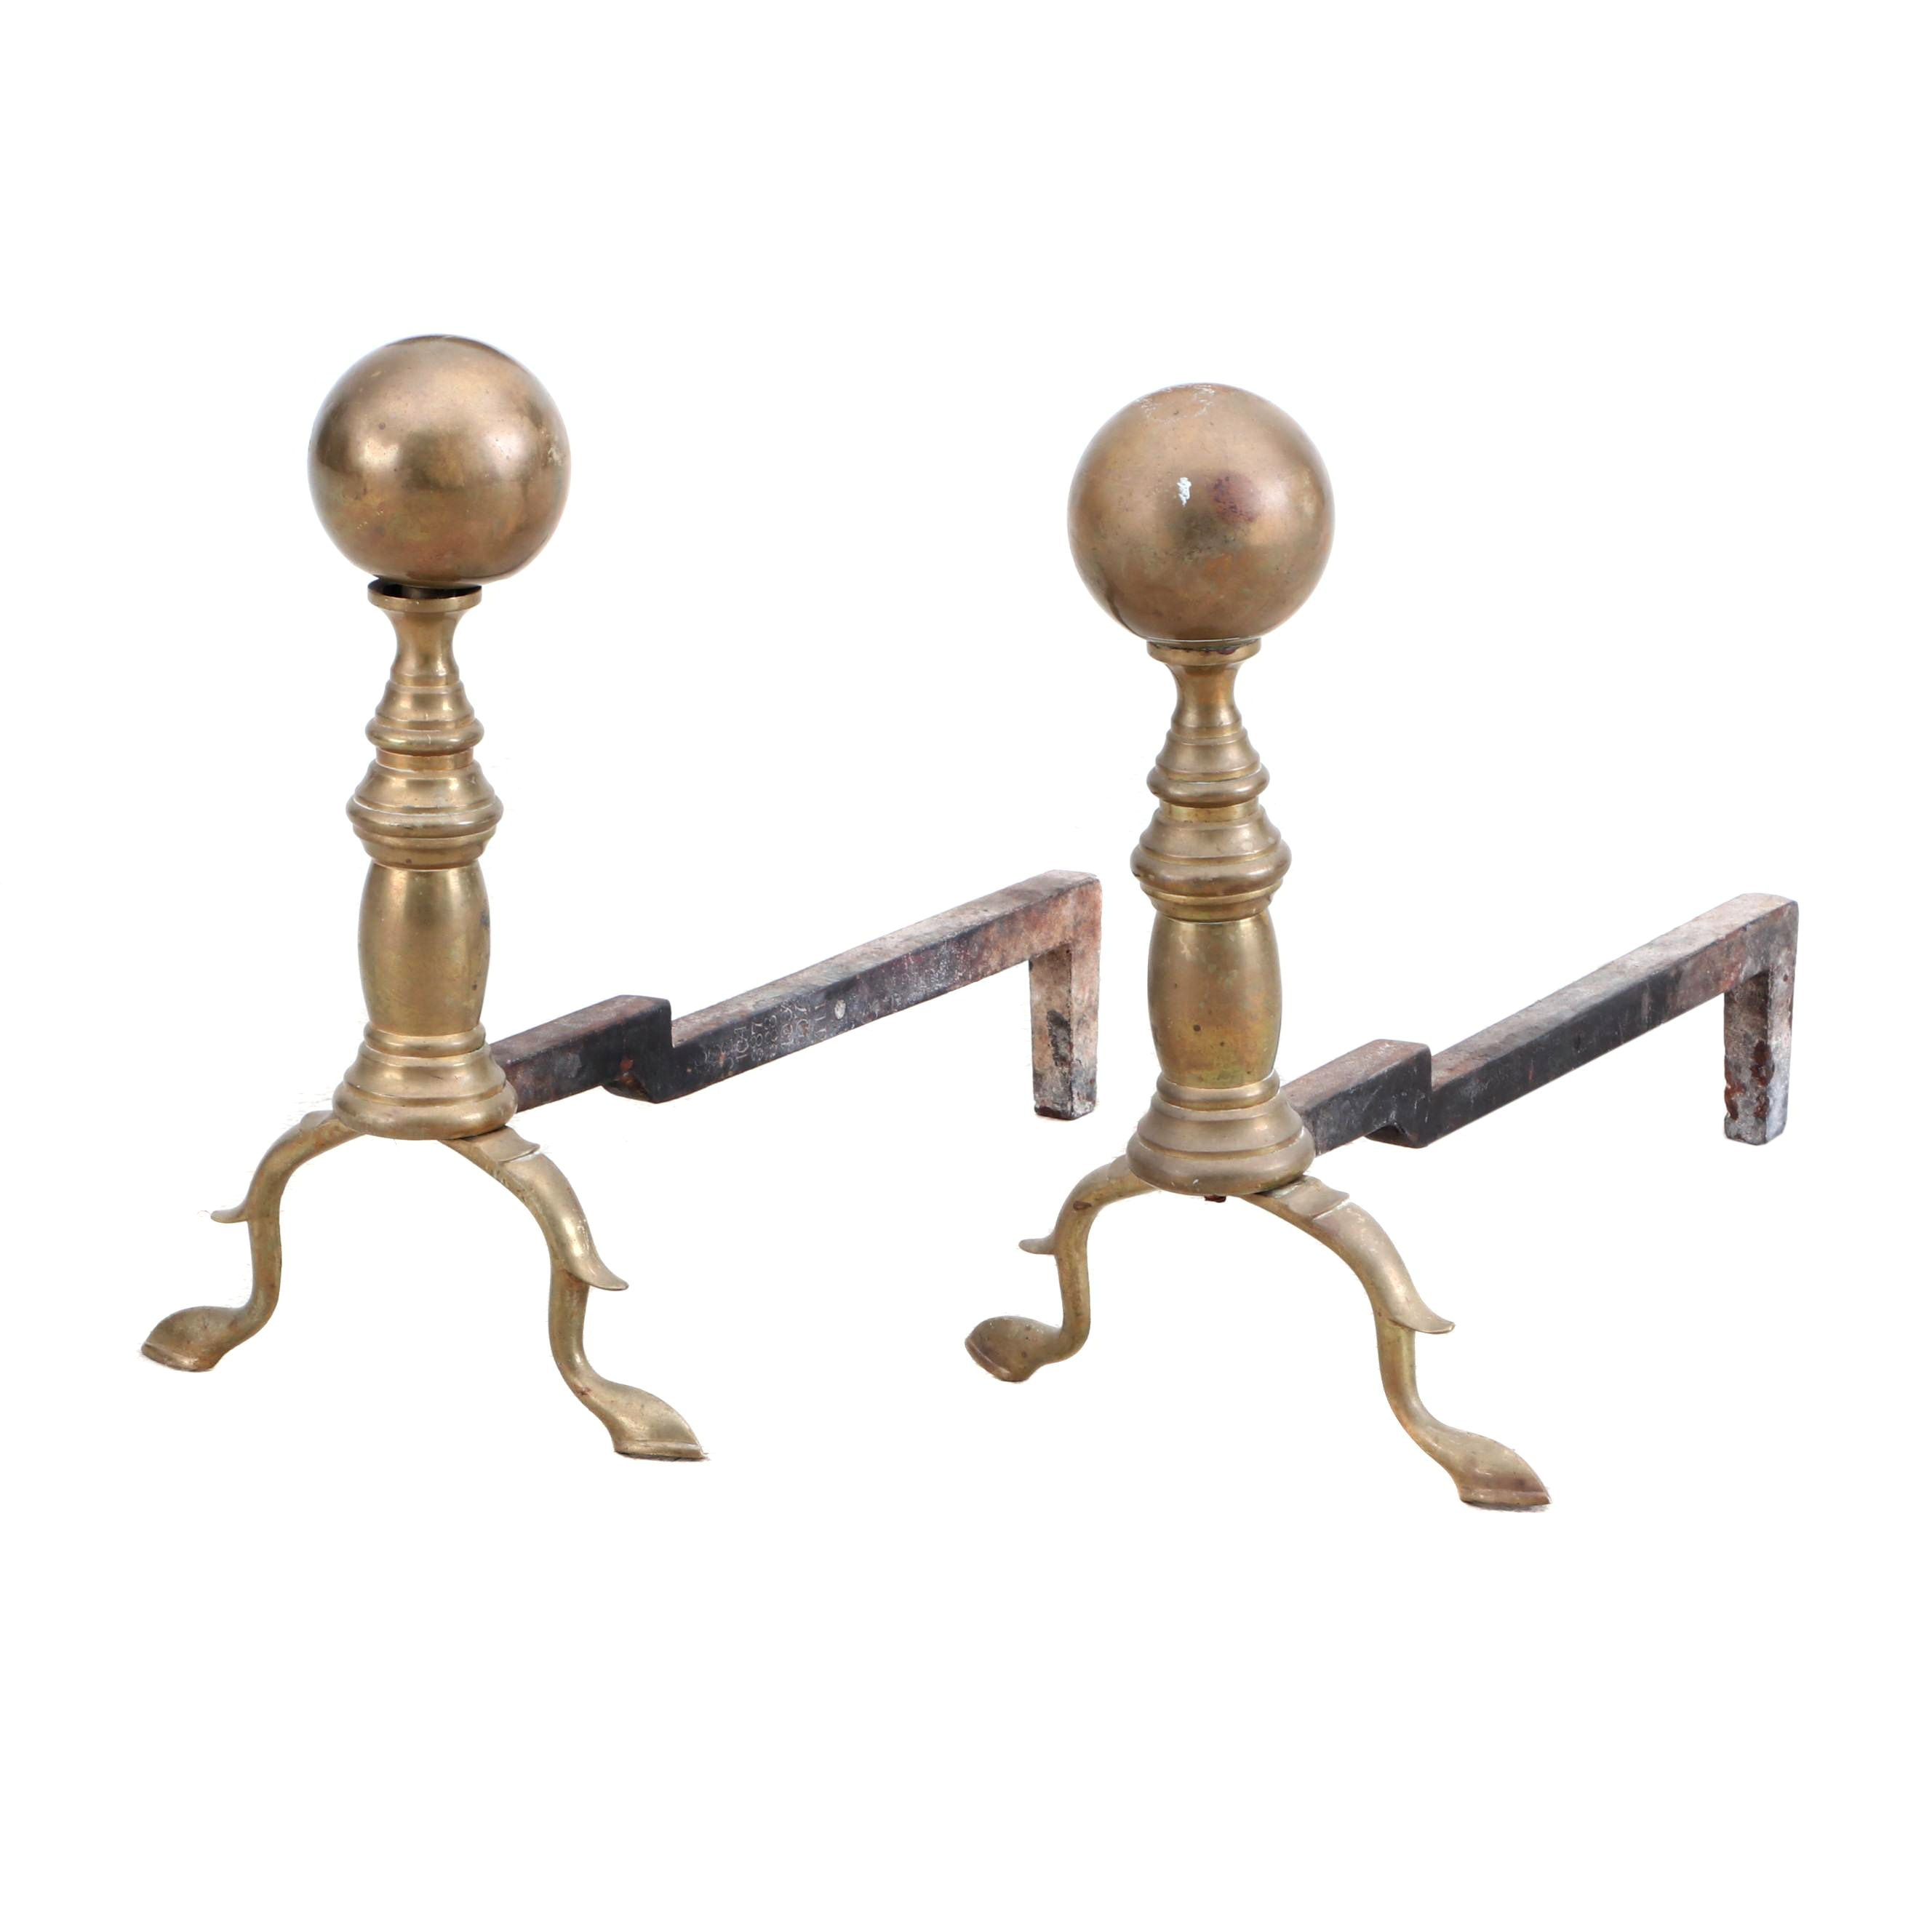 Federal Style Brass Ball Top Andirons, Late 19th to Early 20th Century